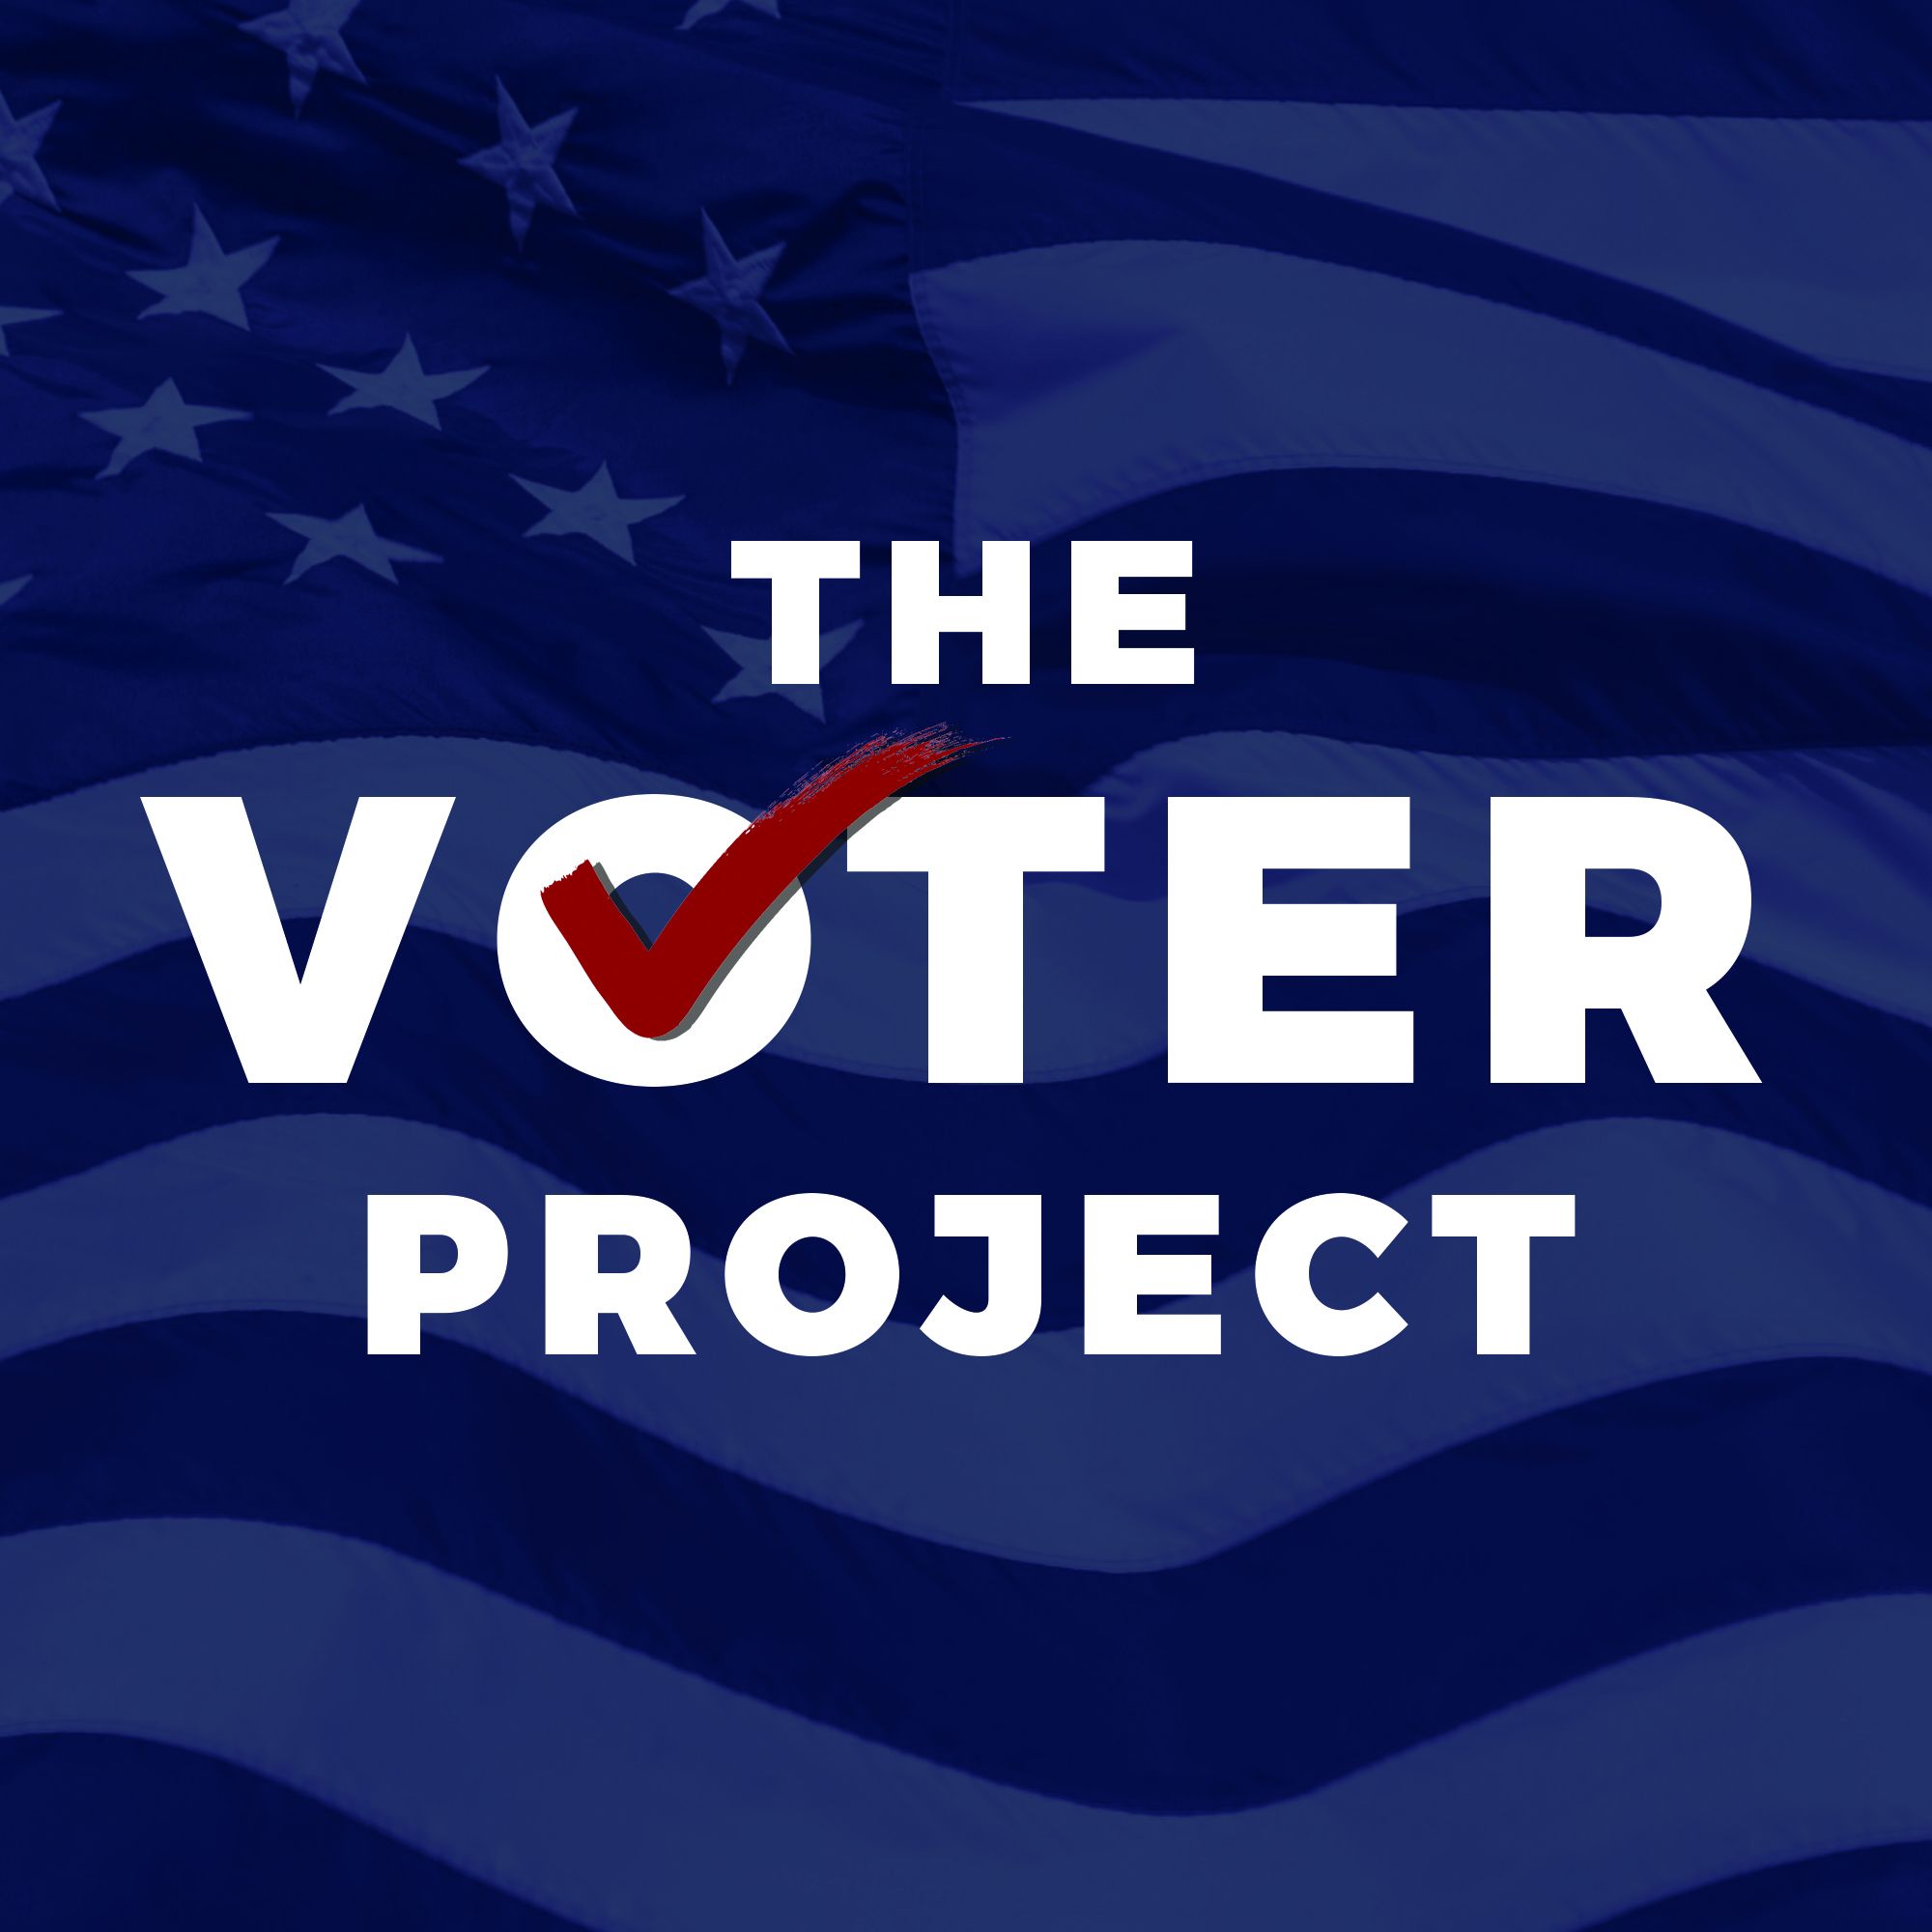 The Voter Project.jpg